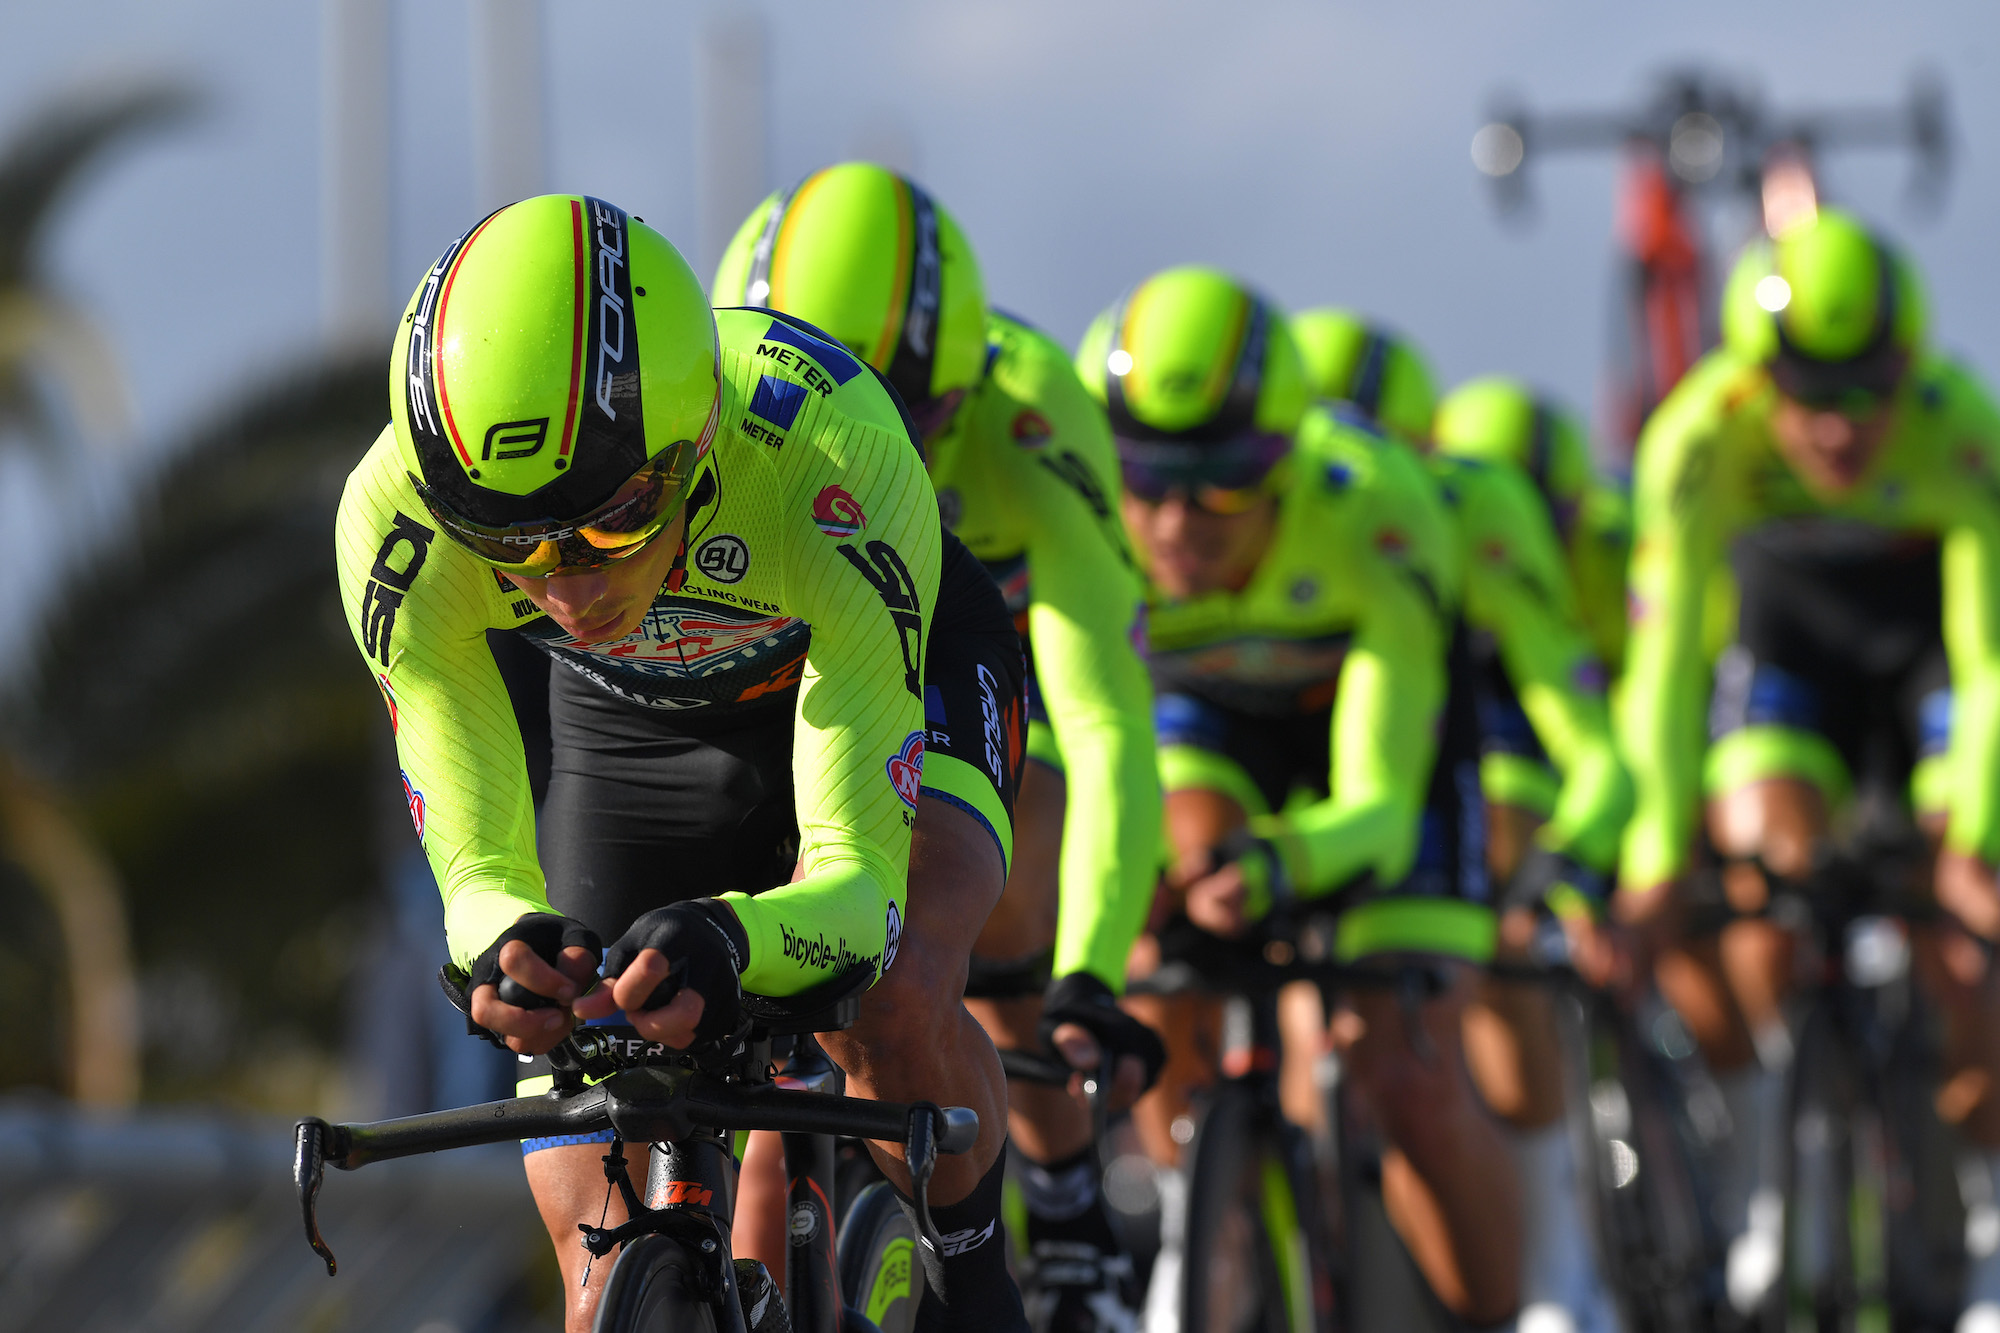 Italian ProTeam to ban power meters during races for 2020 season